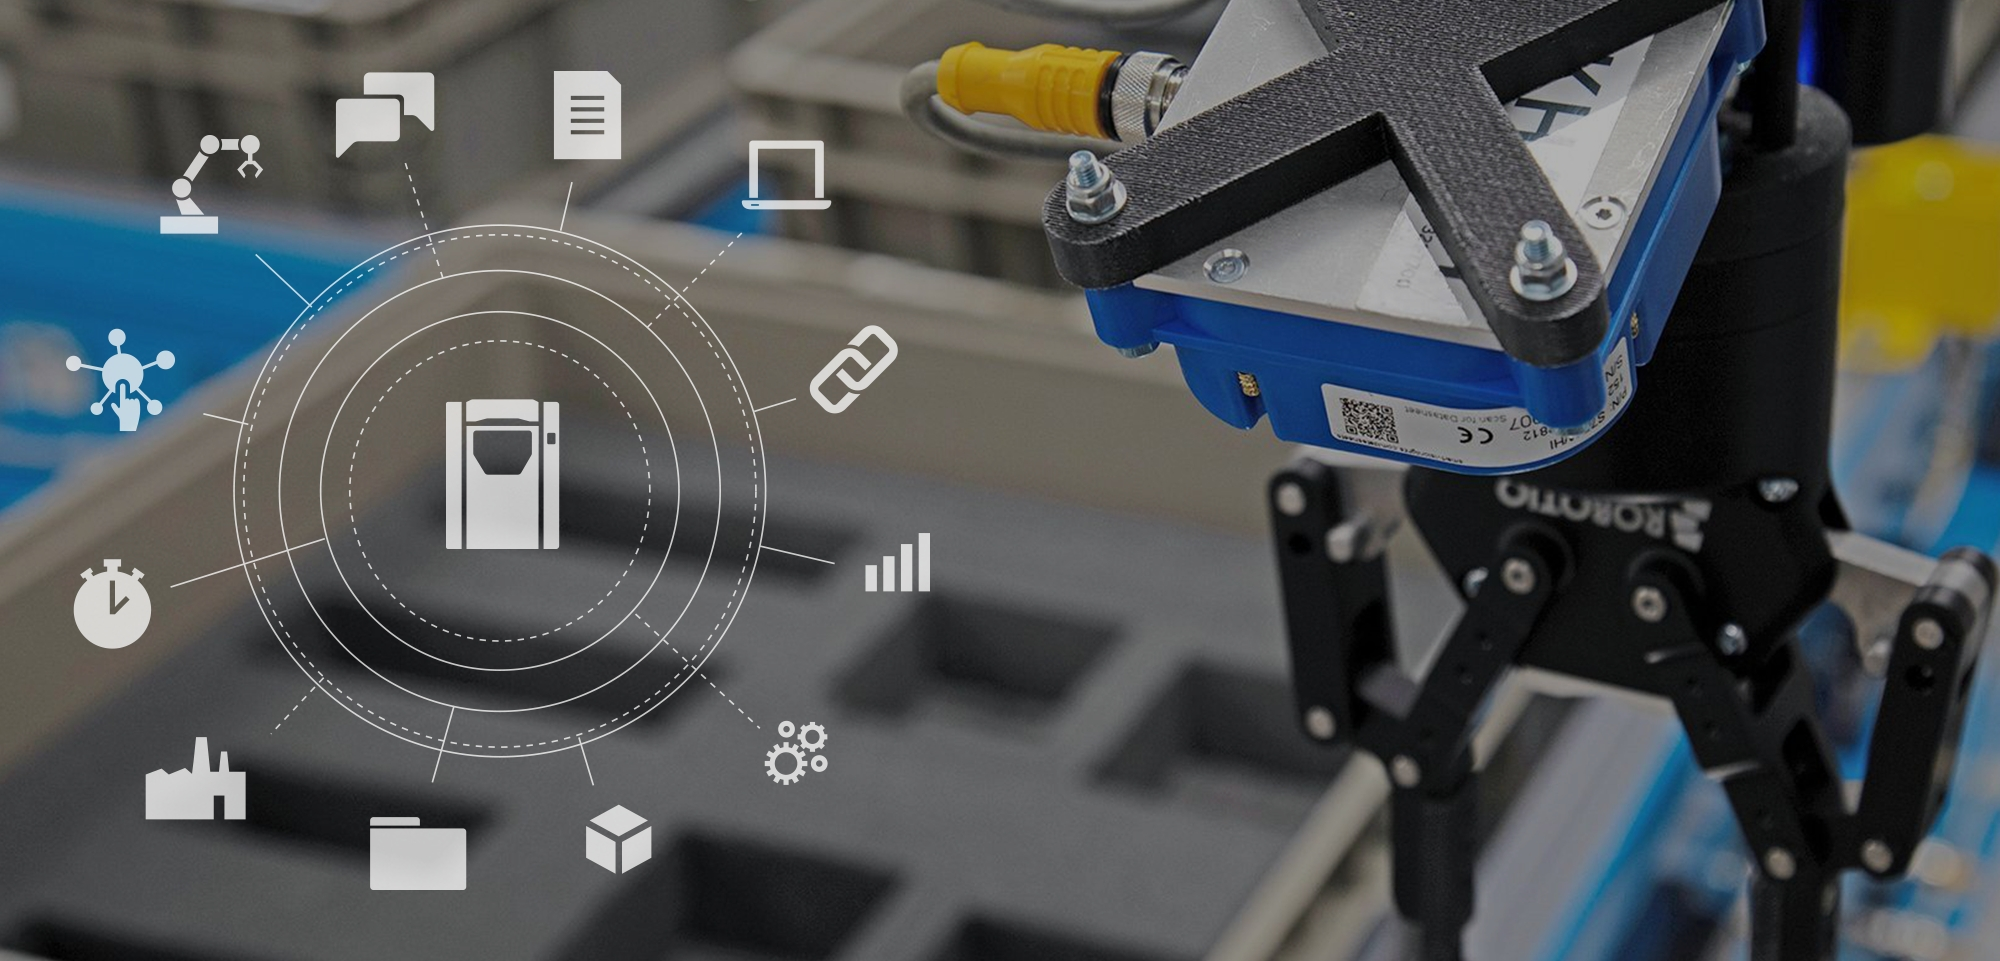 Stratasys has launched its GrabCAD software Development Kit to meet the need of manufacturers increasingly looking to scale up 3D printing for production parts. Image via Business Wire/Stratasys.